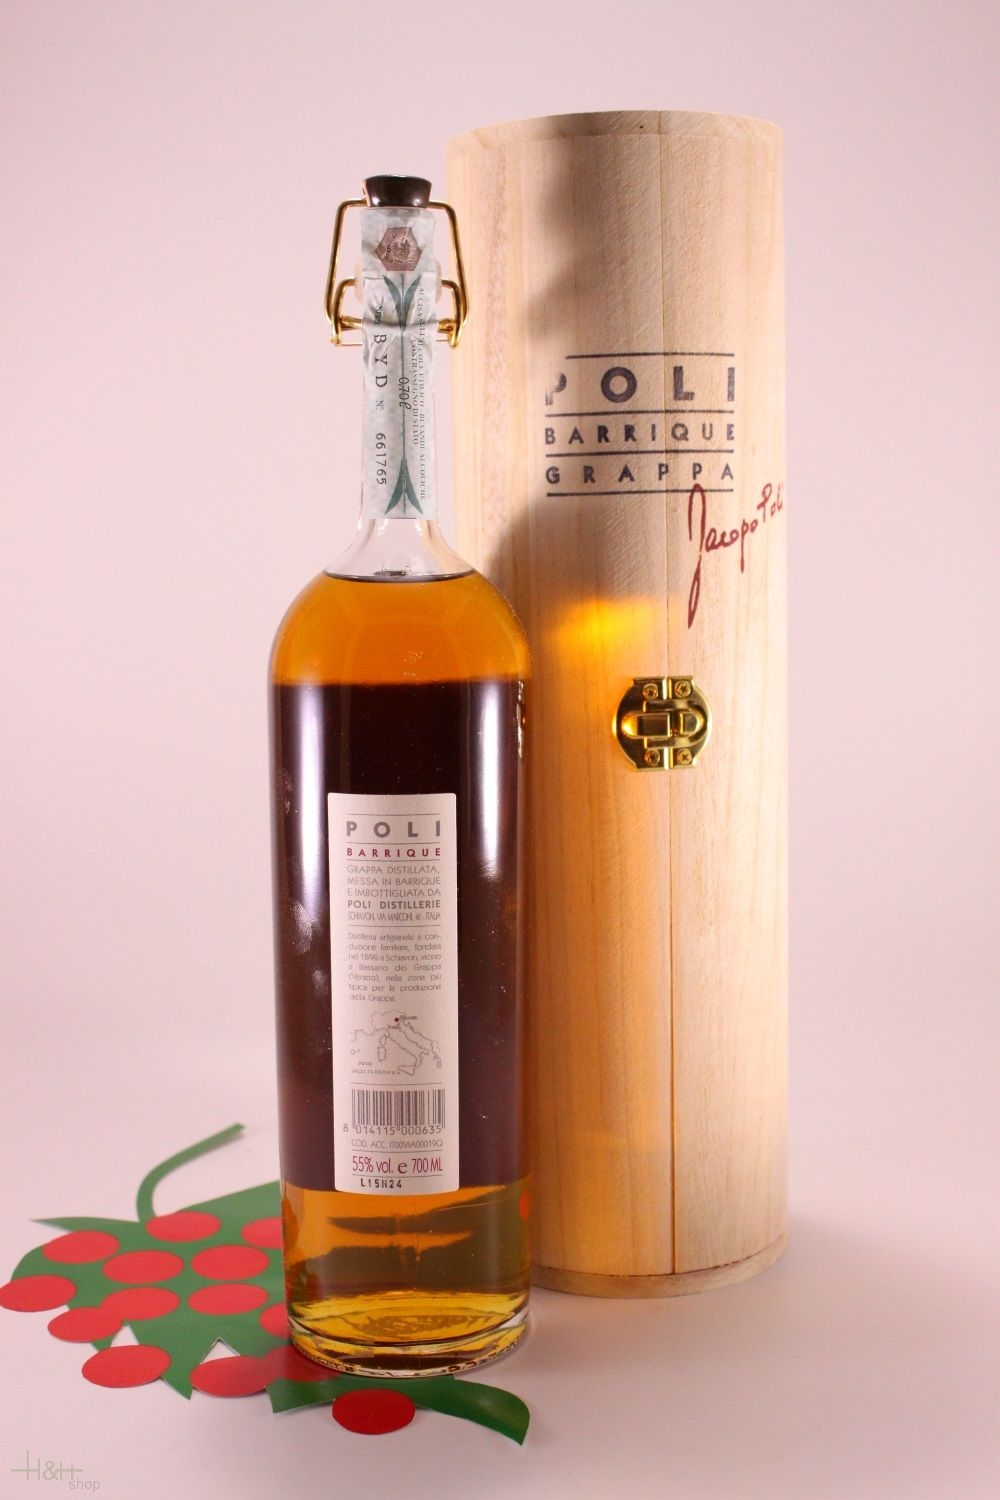 Grappa Poli Barrique